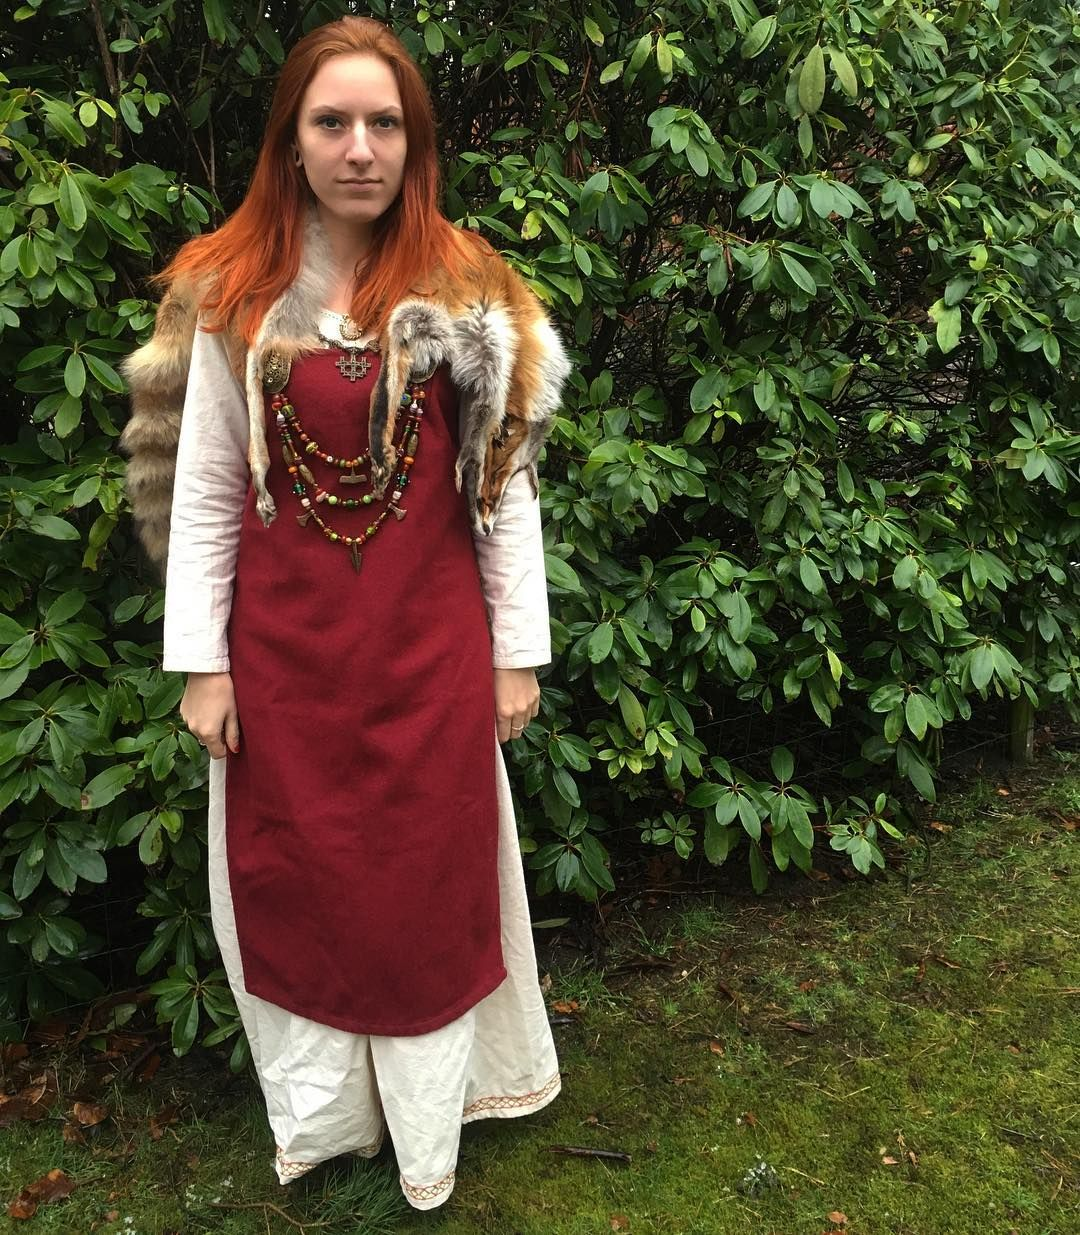 Marjolein Hoekendijk In Her Viking Burgschneider Outfit Outfits Women Viking Women